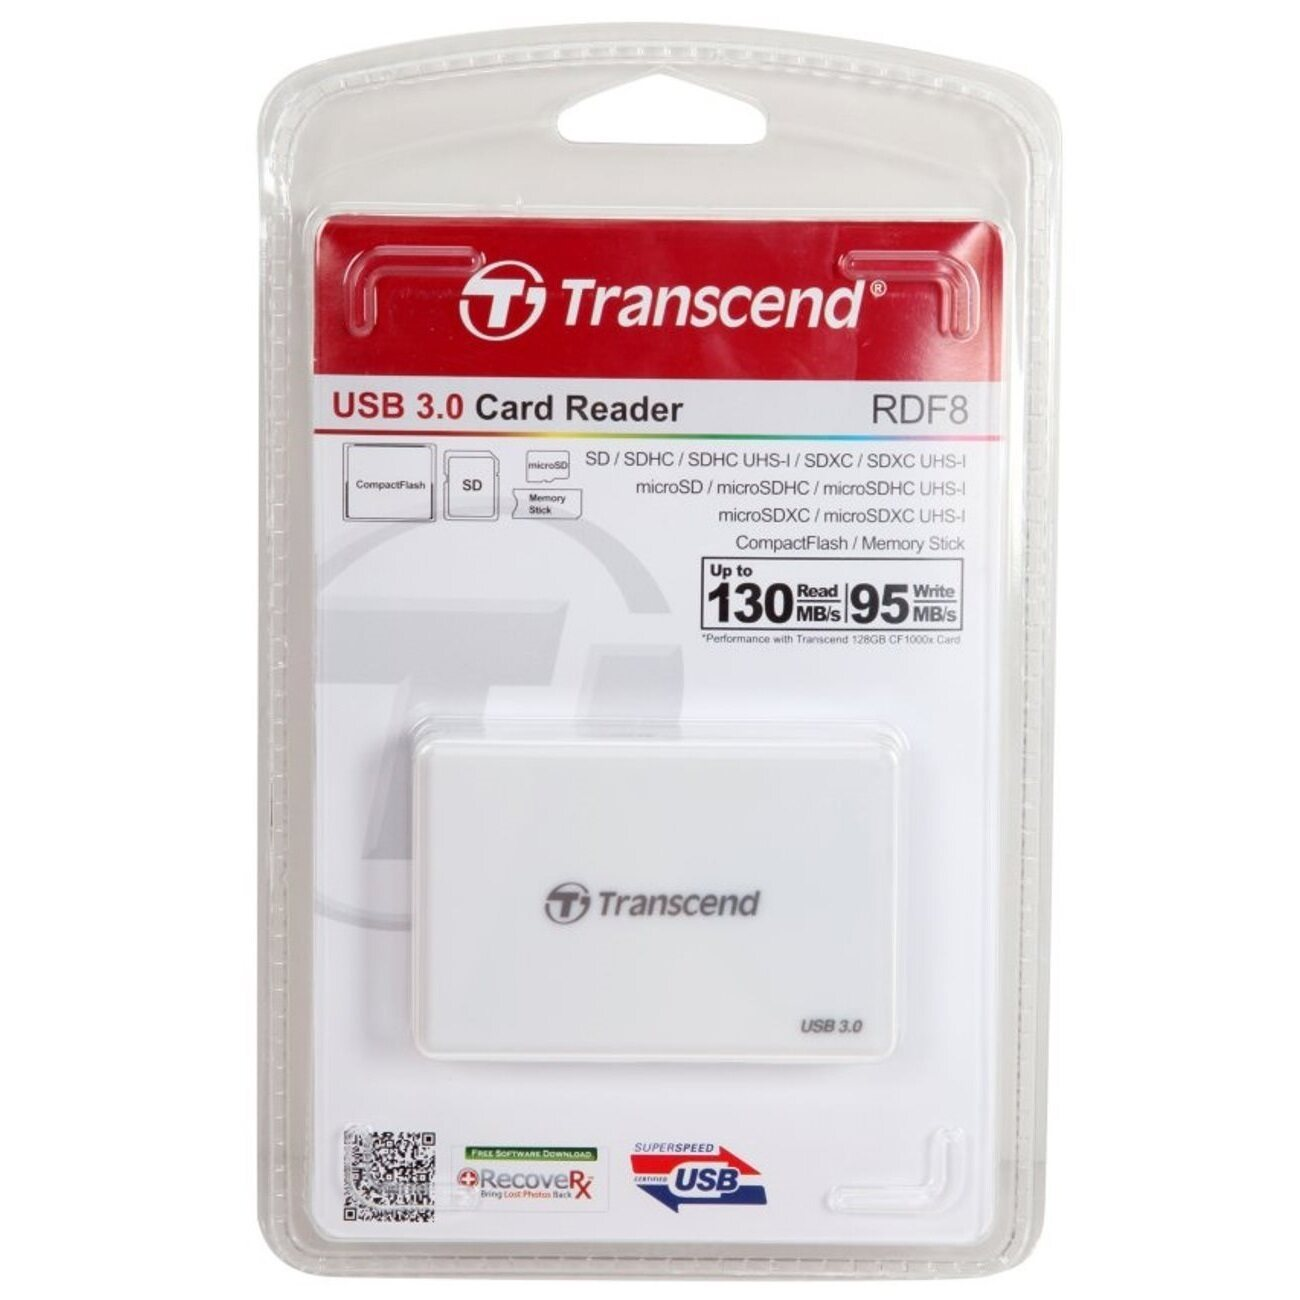 Transcend RDF8 All In One USB3.0 Card Reader (White)